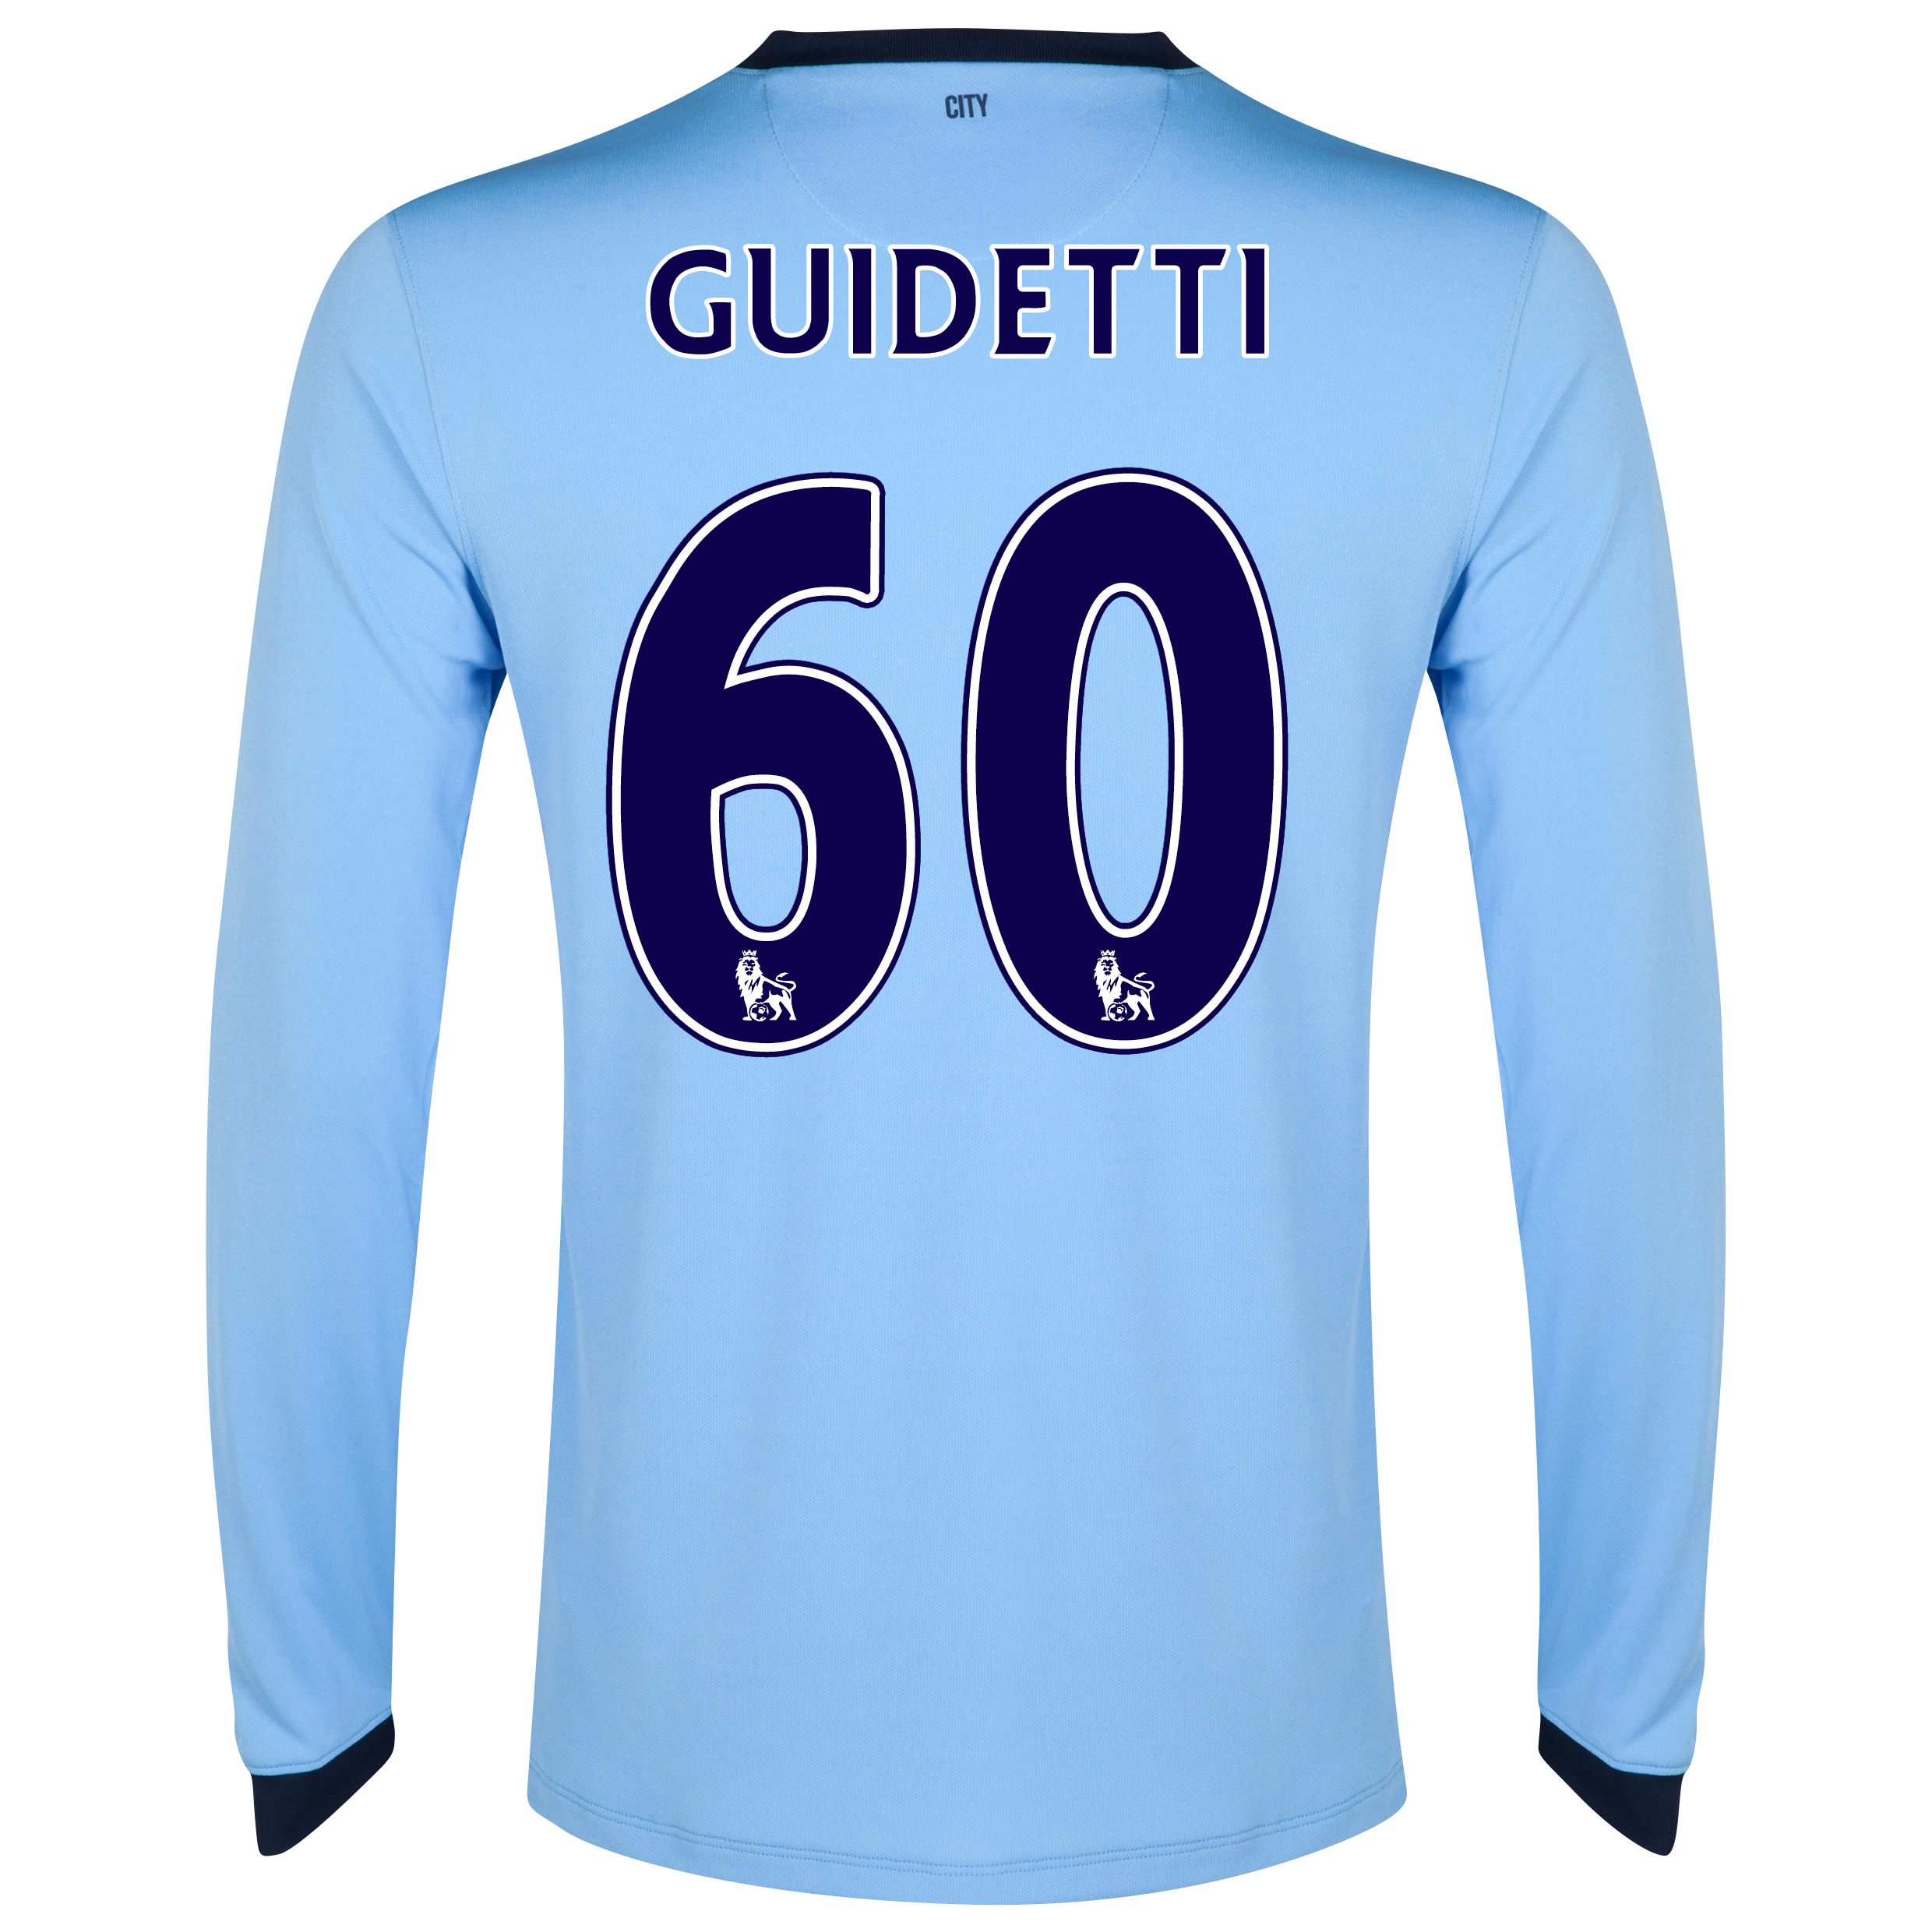 Manchester City Home Shirt 2014/15 - Long Sleeve Sky Blue with Guidetti 60 printing